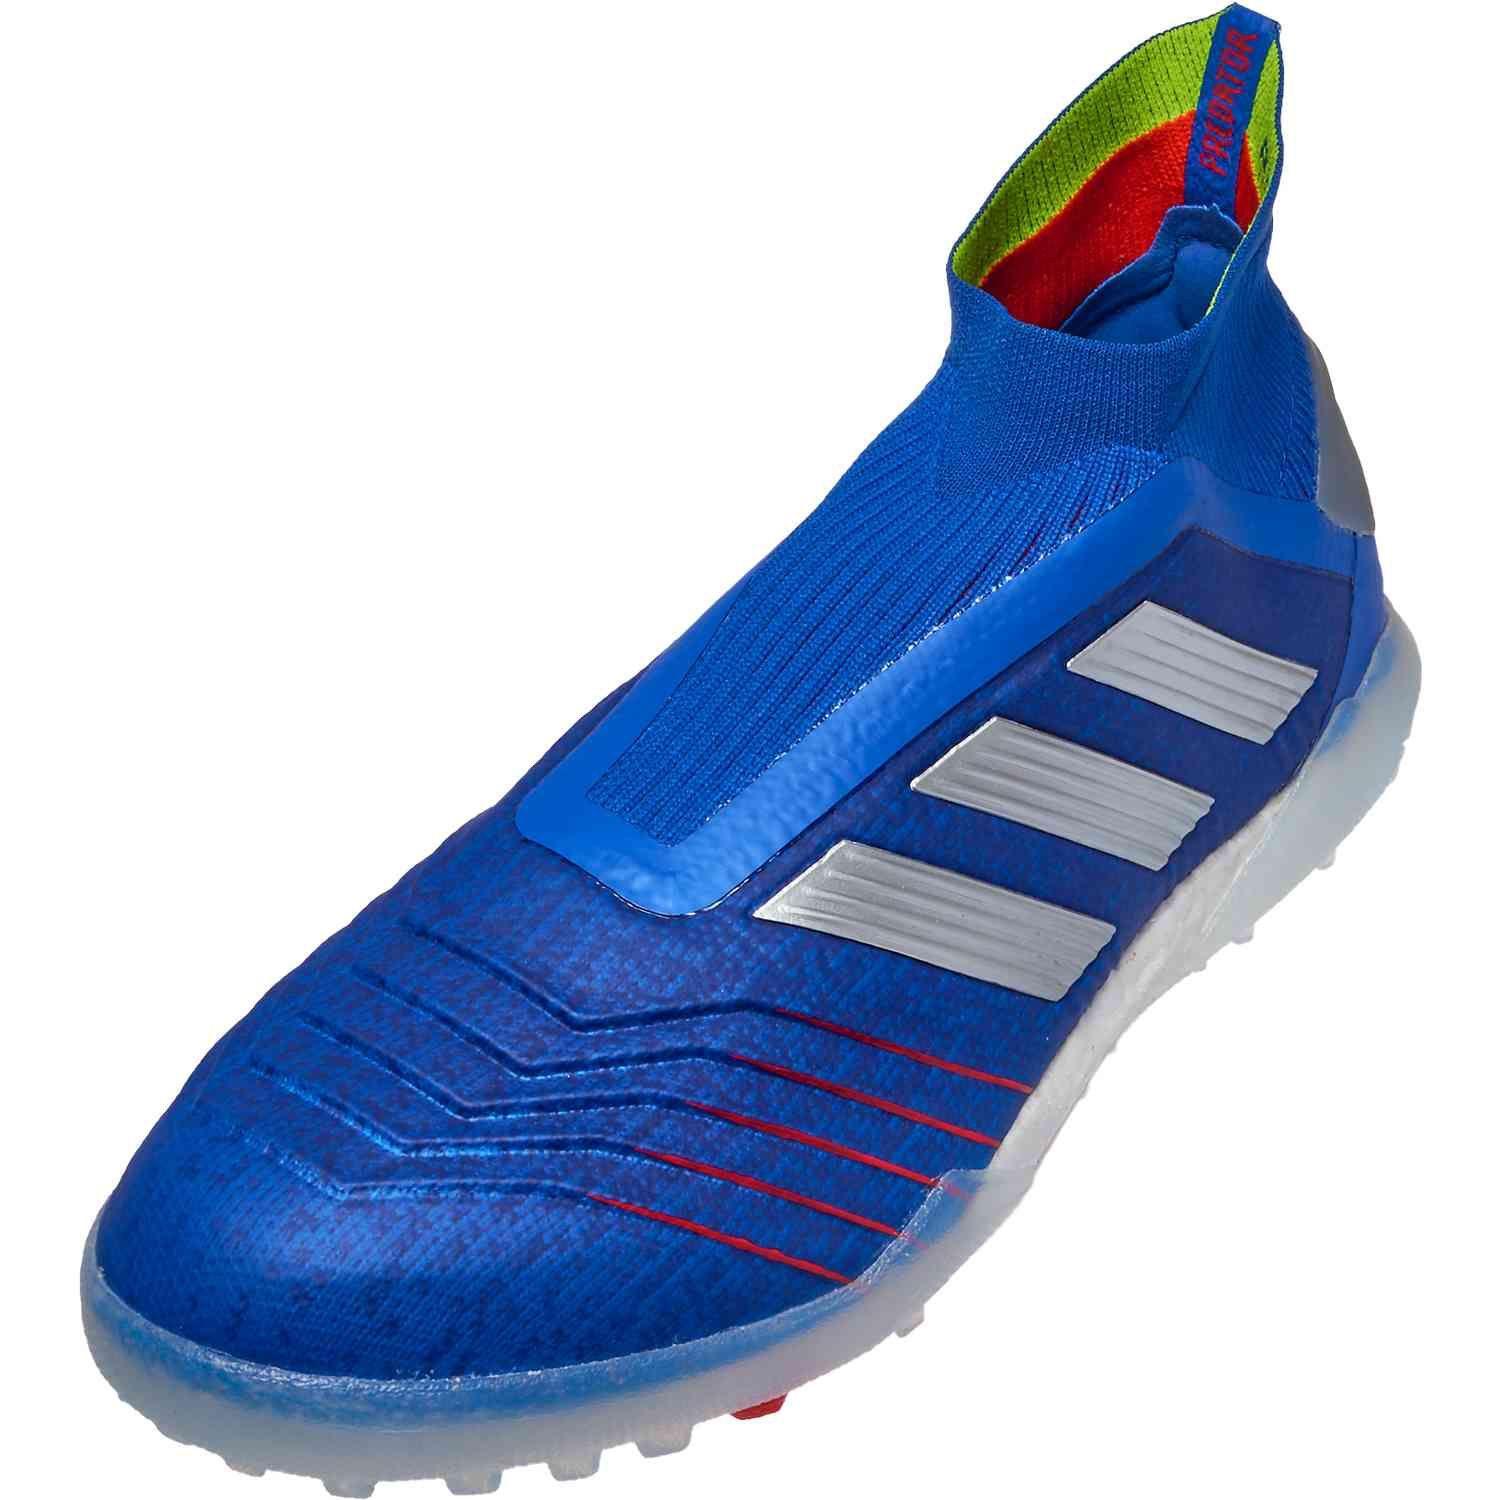 771877c7b Buy the Exhibit pack adidas Predator 19+ turf soccer shoes from www. soccerpro.com right now